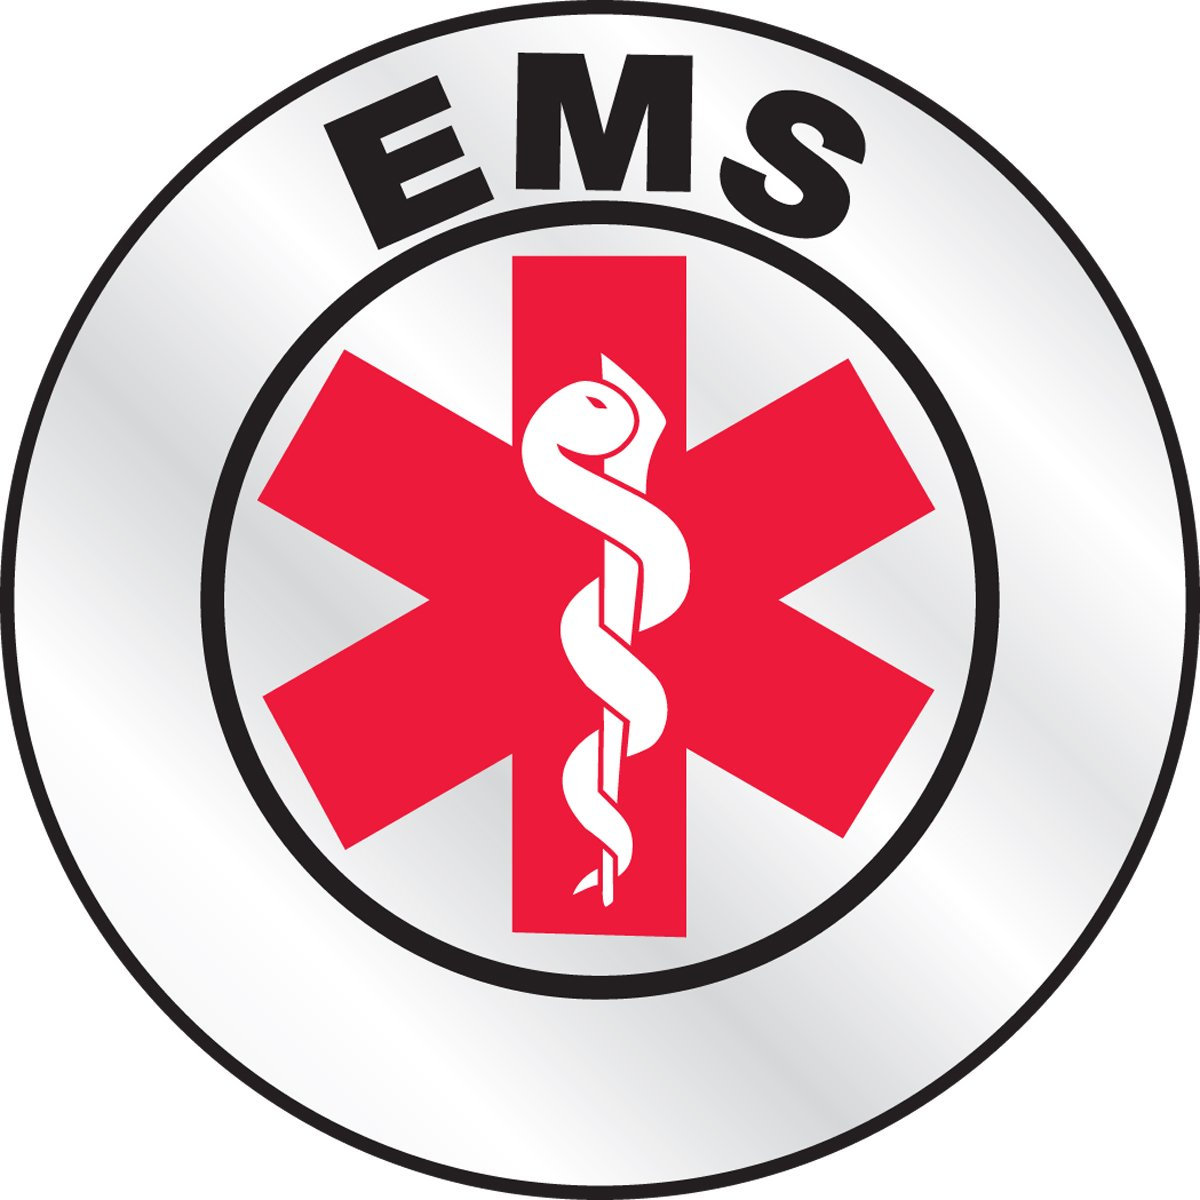 LegendEMS with Graphic Accuform Signs LHTL616 Emergency Response Reflective Helmet Sticker 2-1//4 Diameter Red//Black on White LegendEMS with Graphic 2-1//4 Diameter